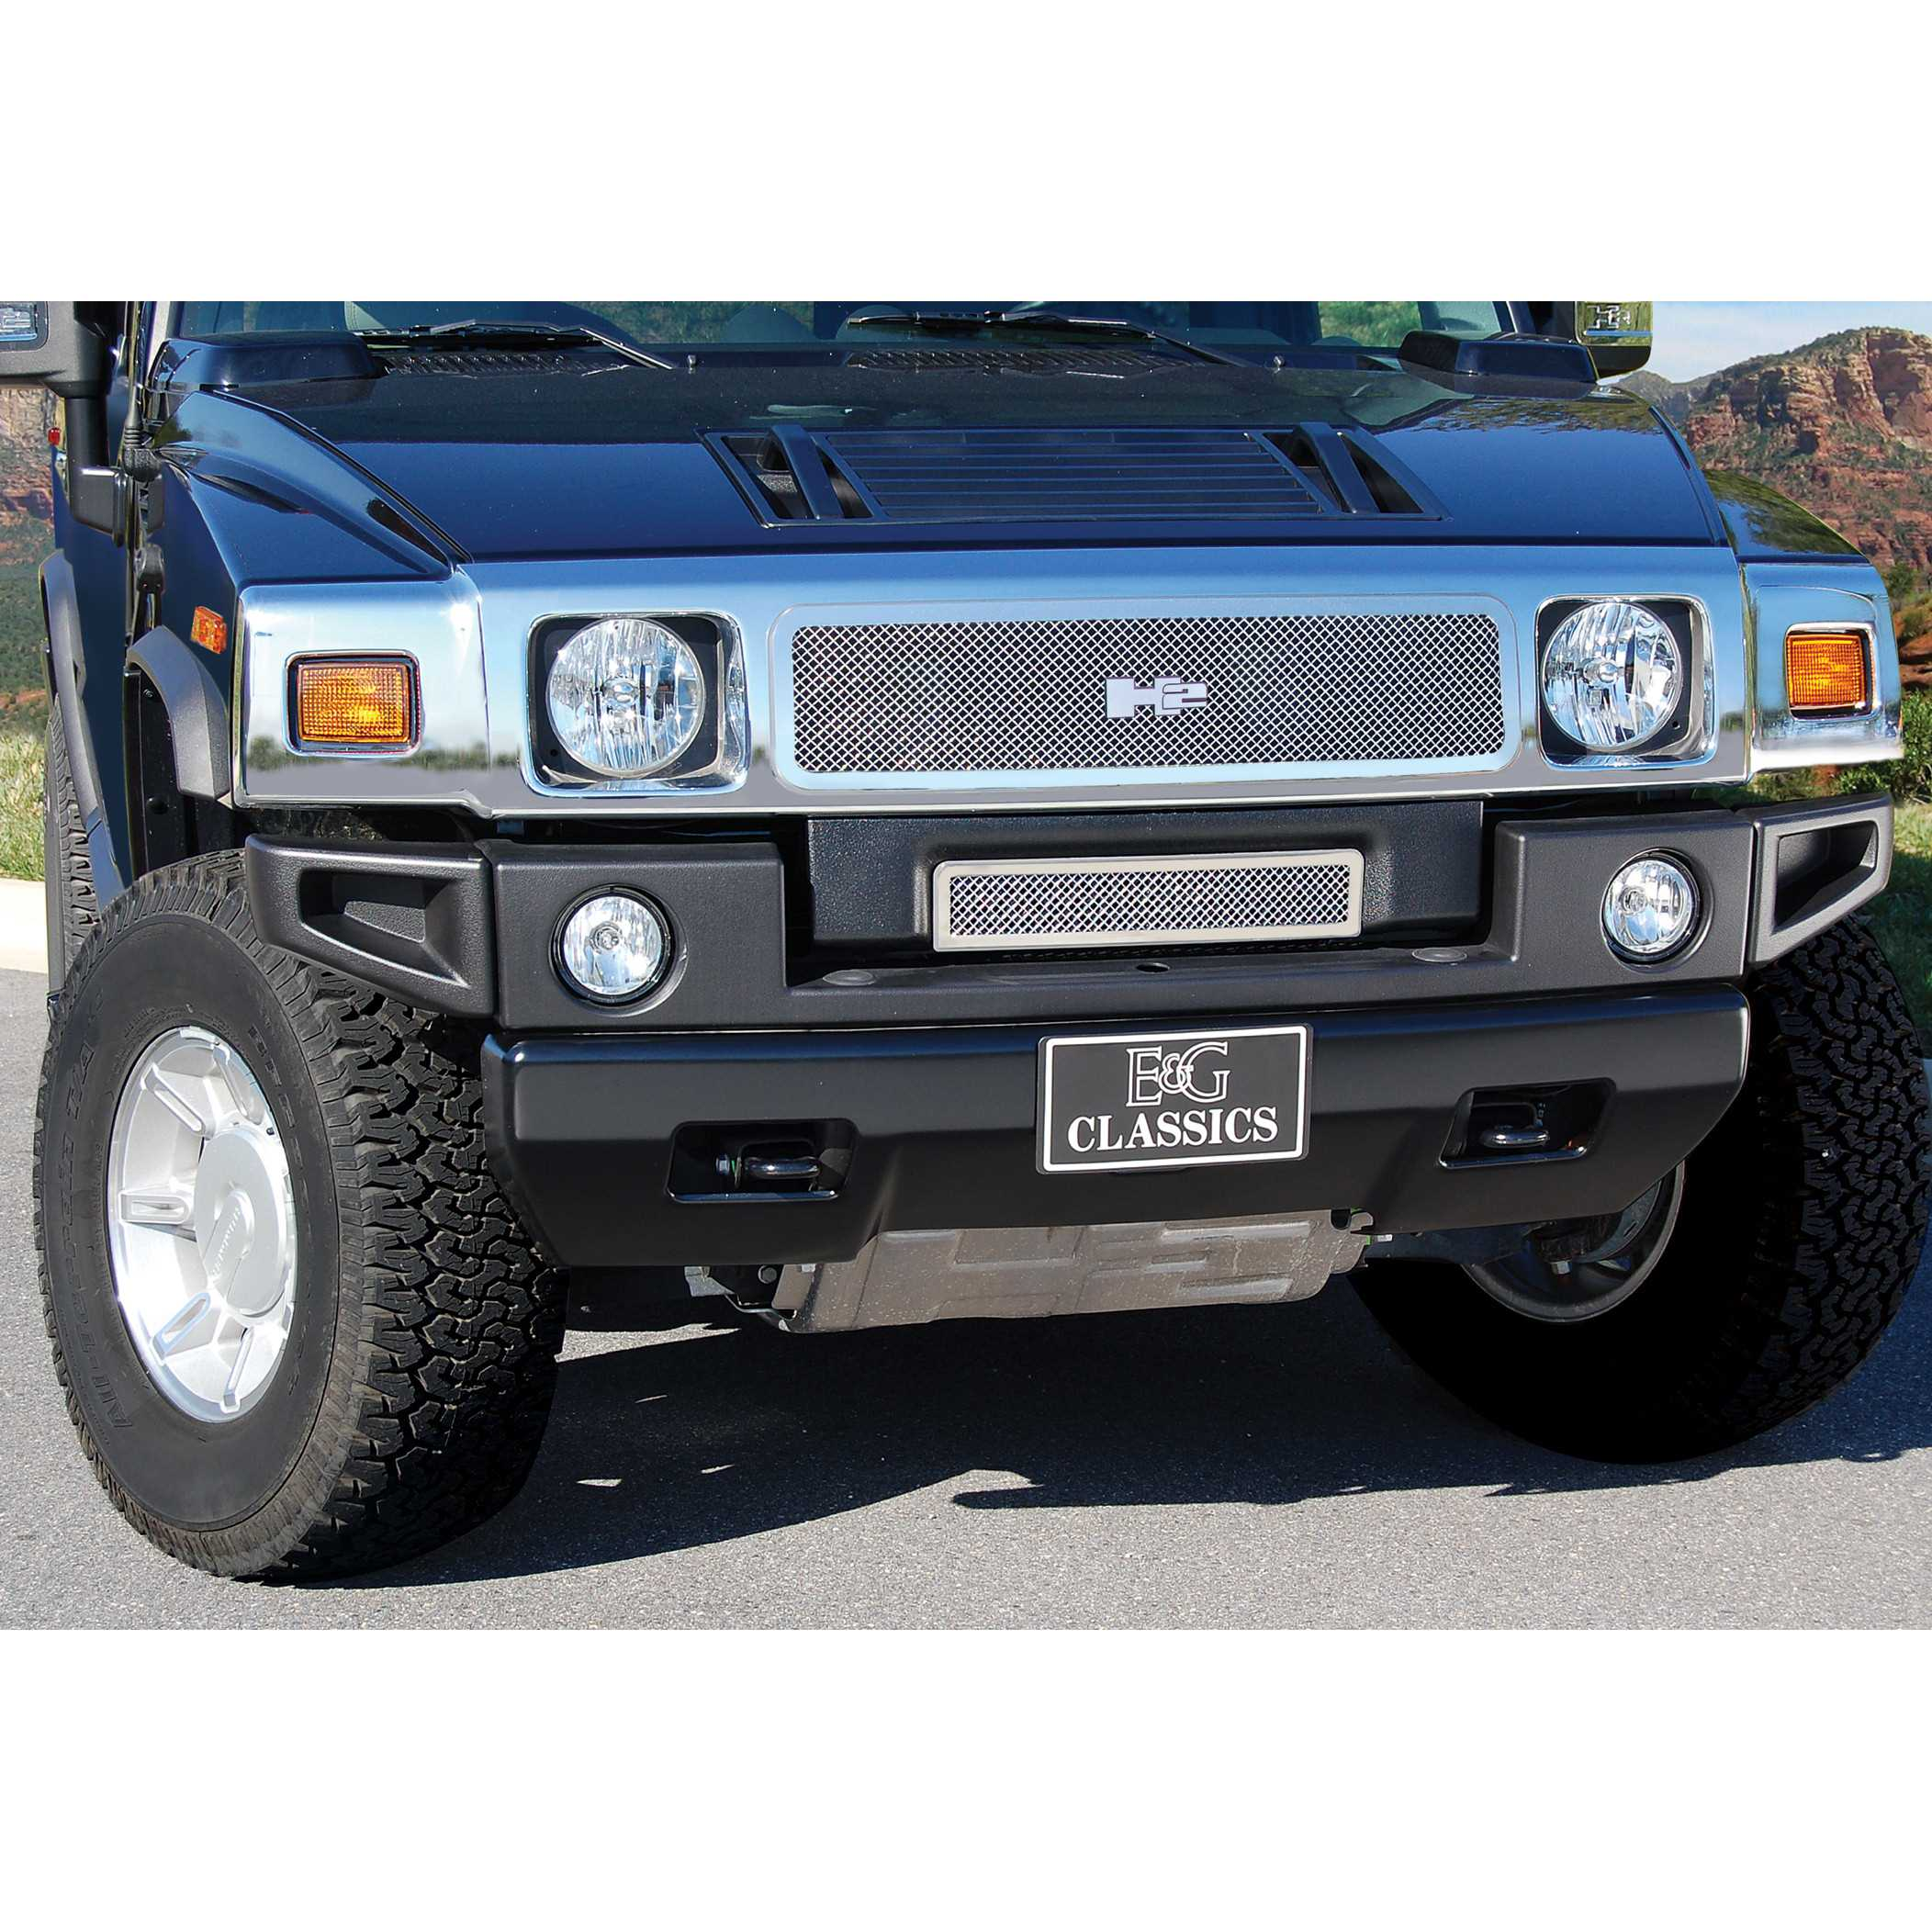 Billet Grilles Custom grills for your car truck jeep or SUV